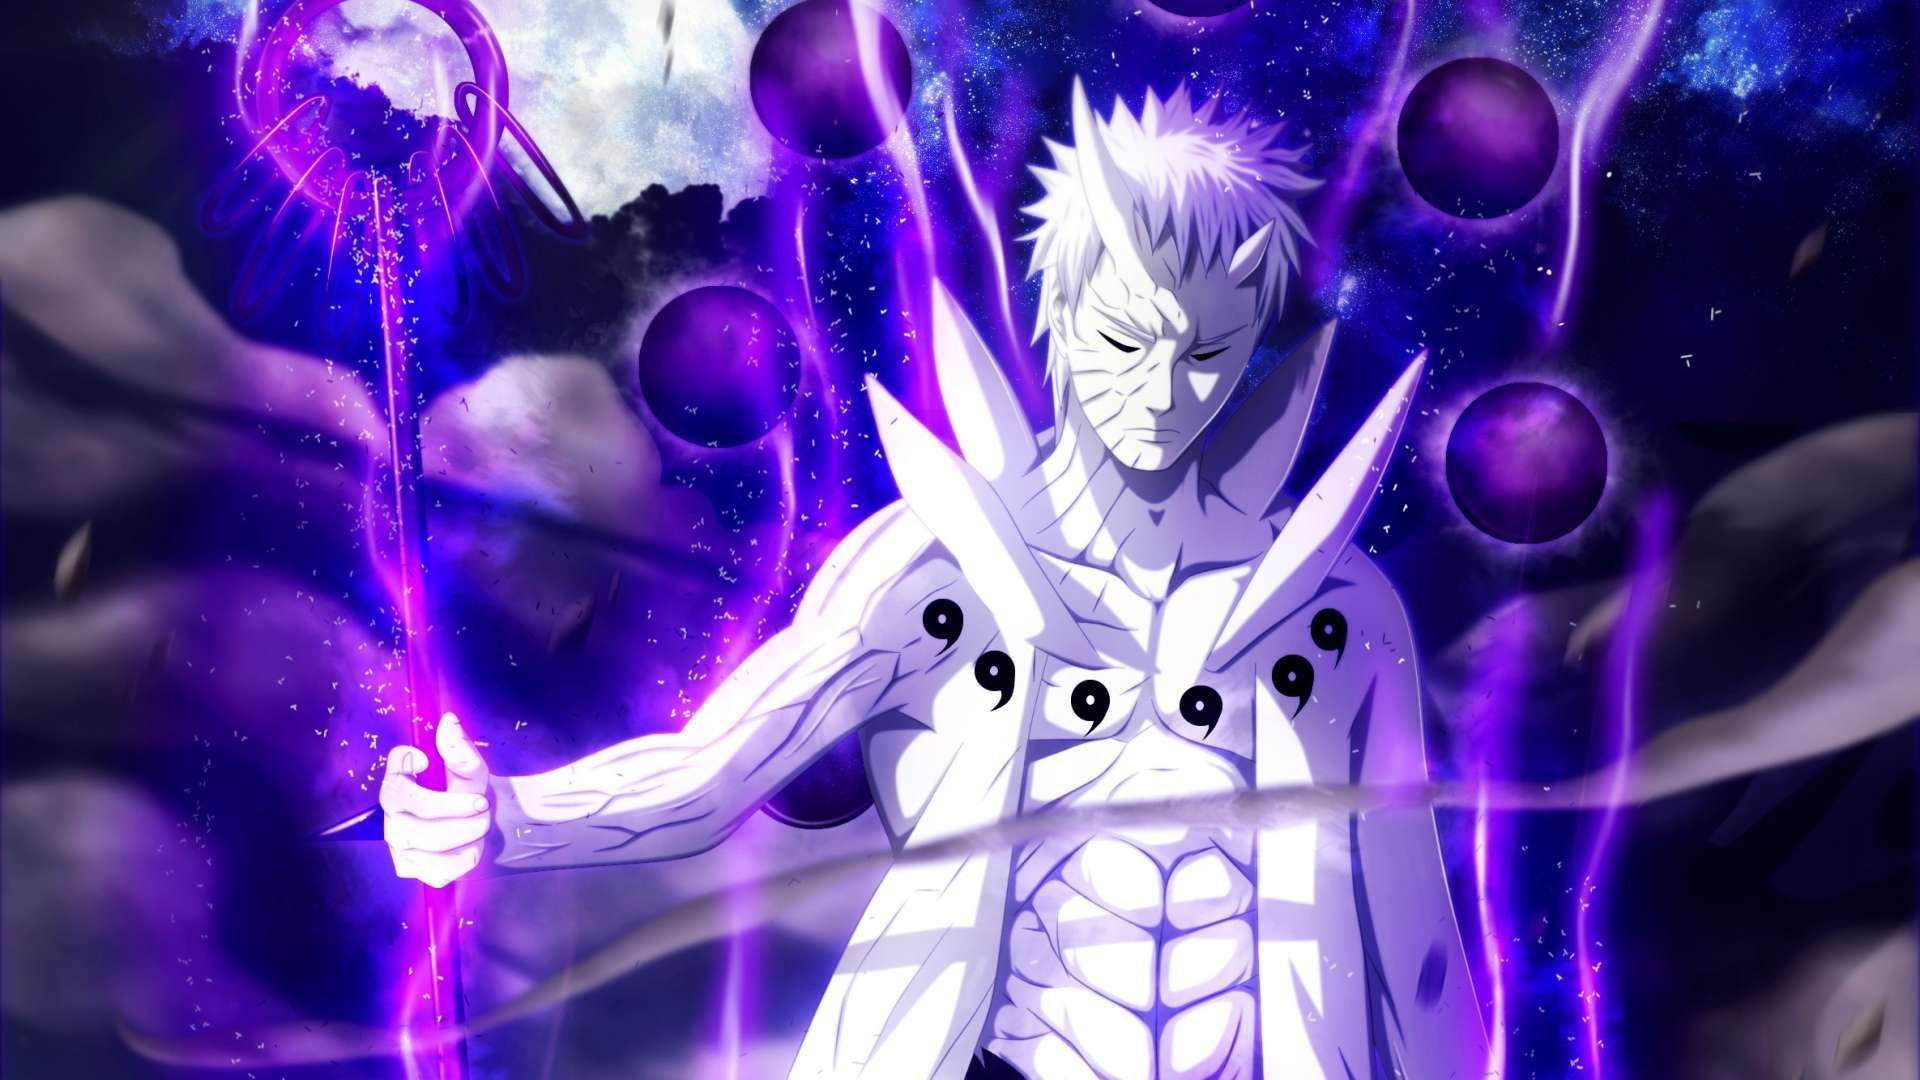 1080p High Quality Anime Wallpaper Em 2020 Wallpapers Hd Anime Obito Uchiha Anime Fantasy